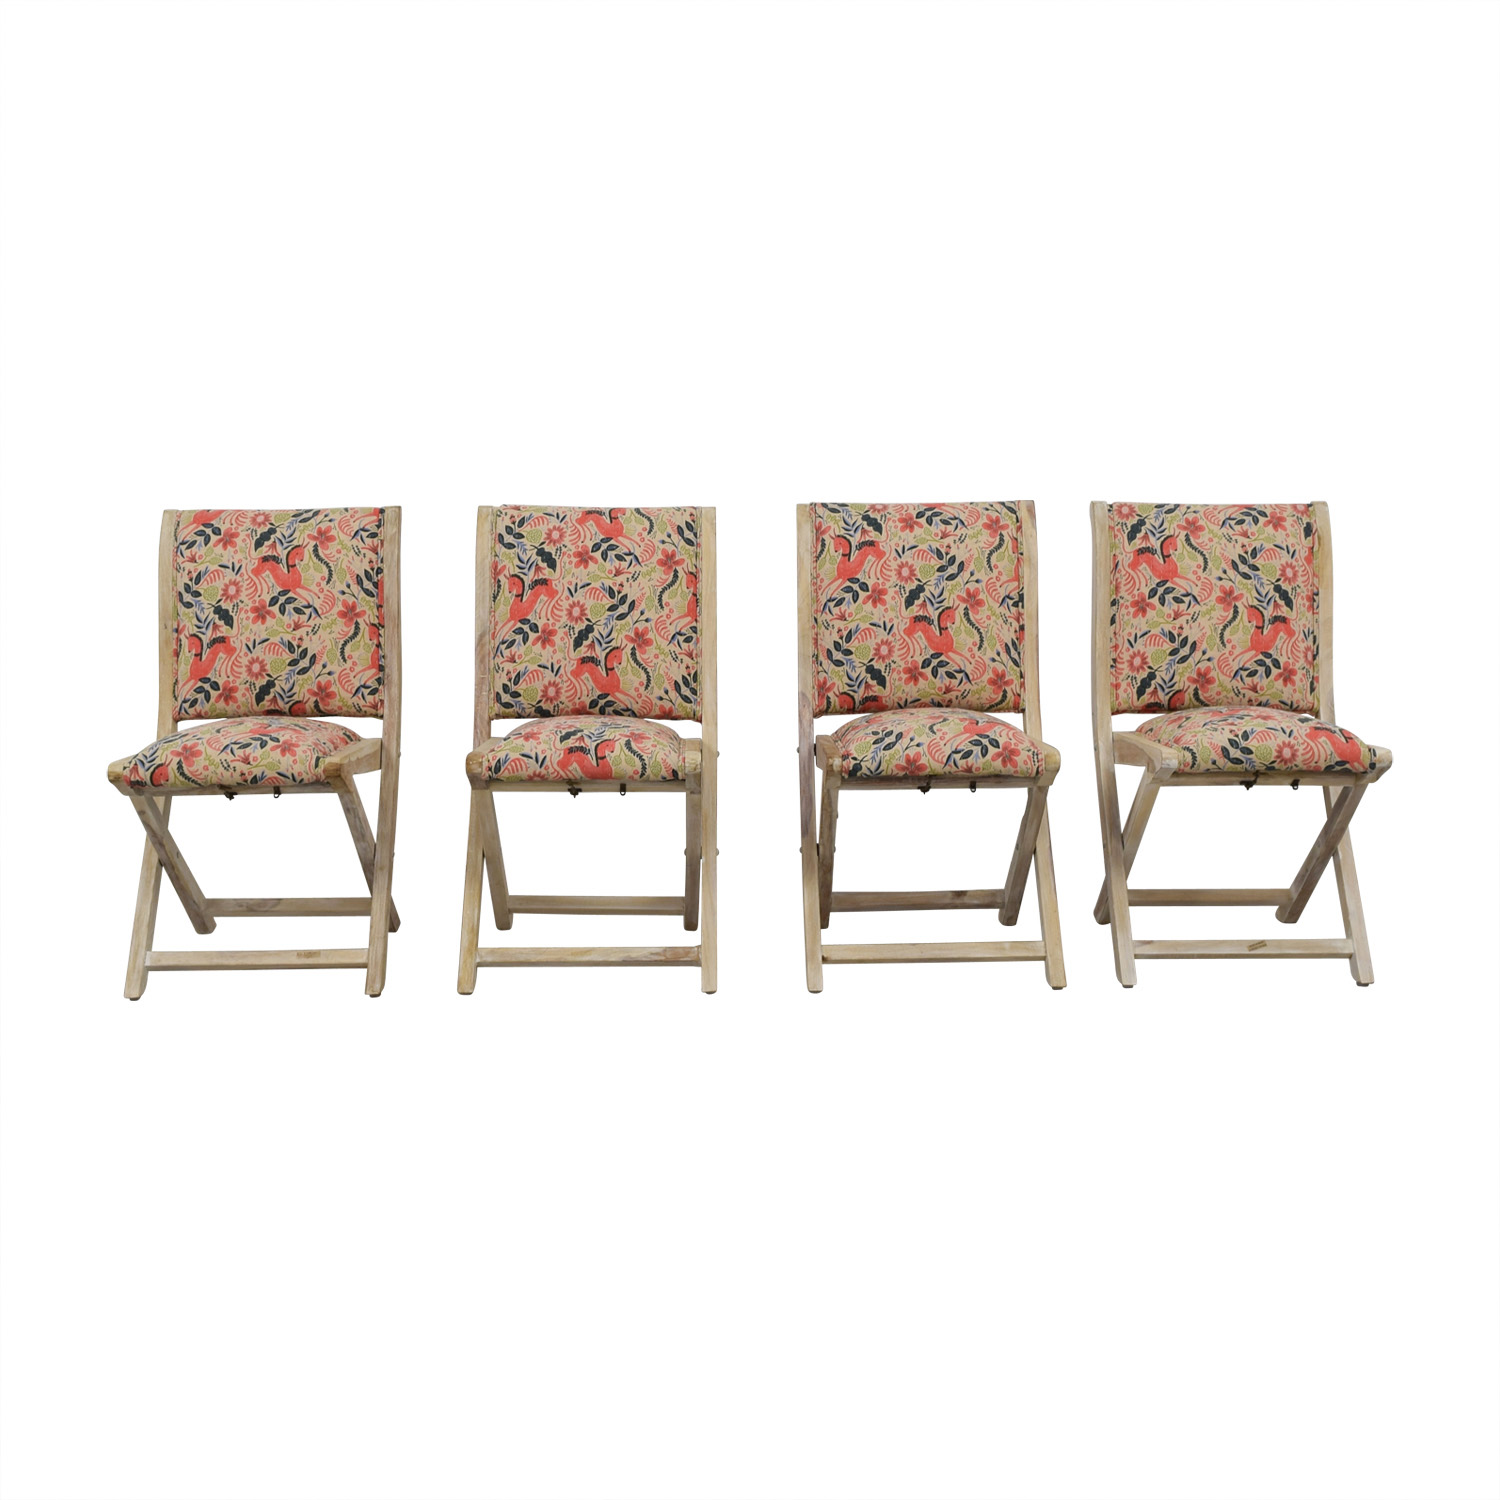 Anthropologie Anthropologie Rustic Multi-Colored Unicorn Folding Chairs Dining Chairs